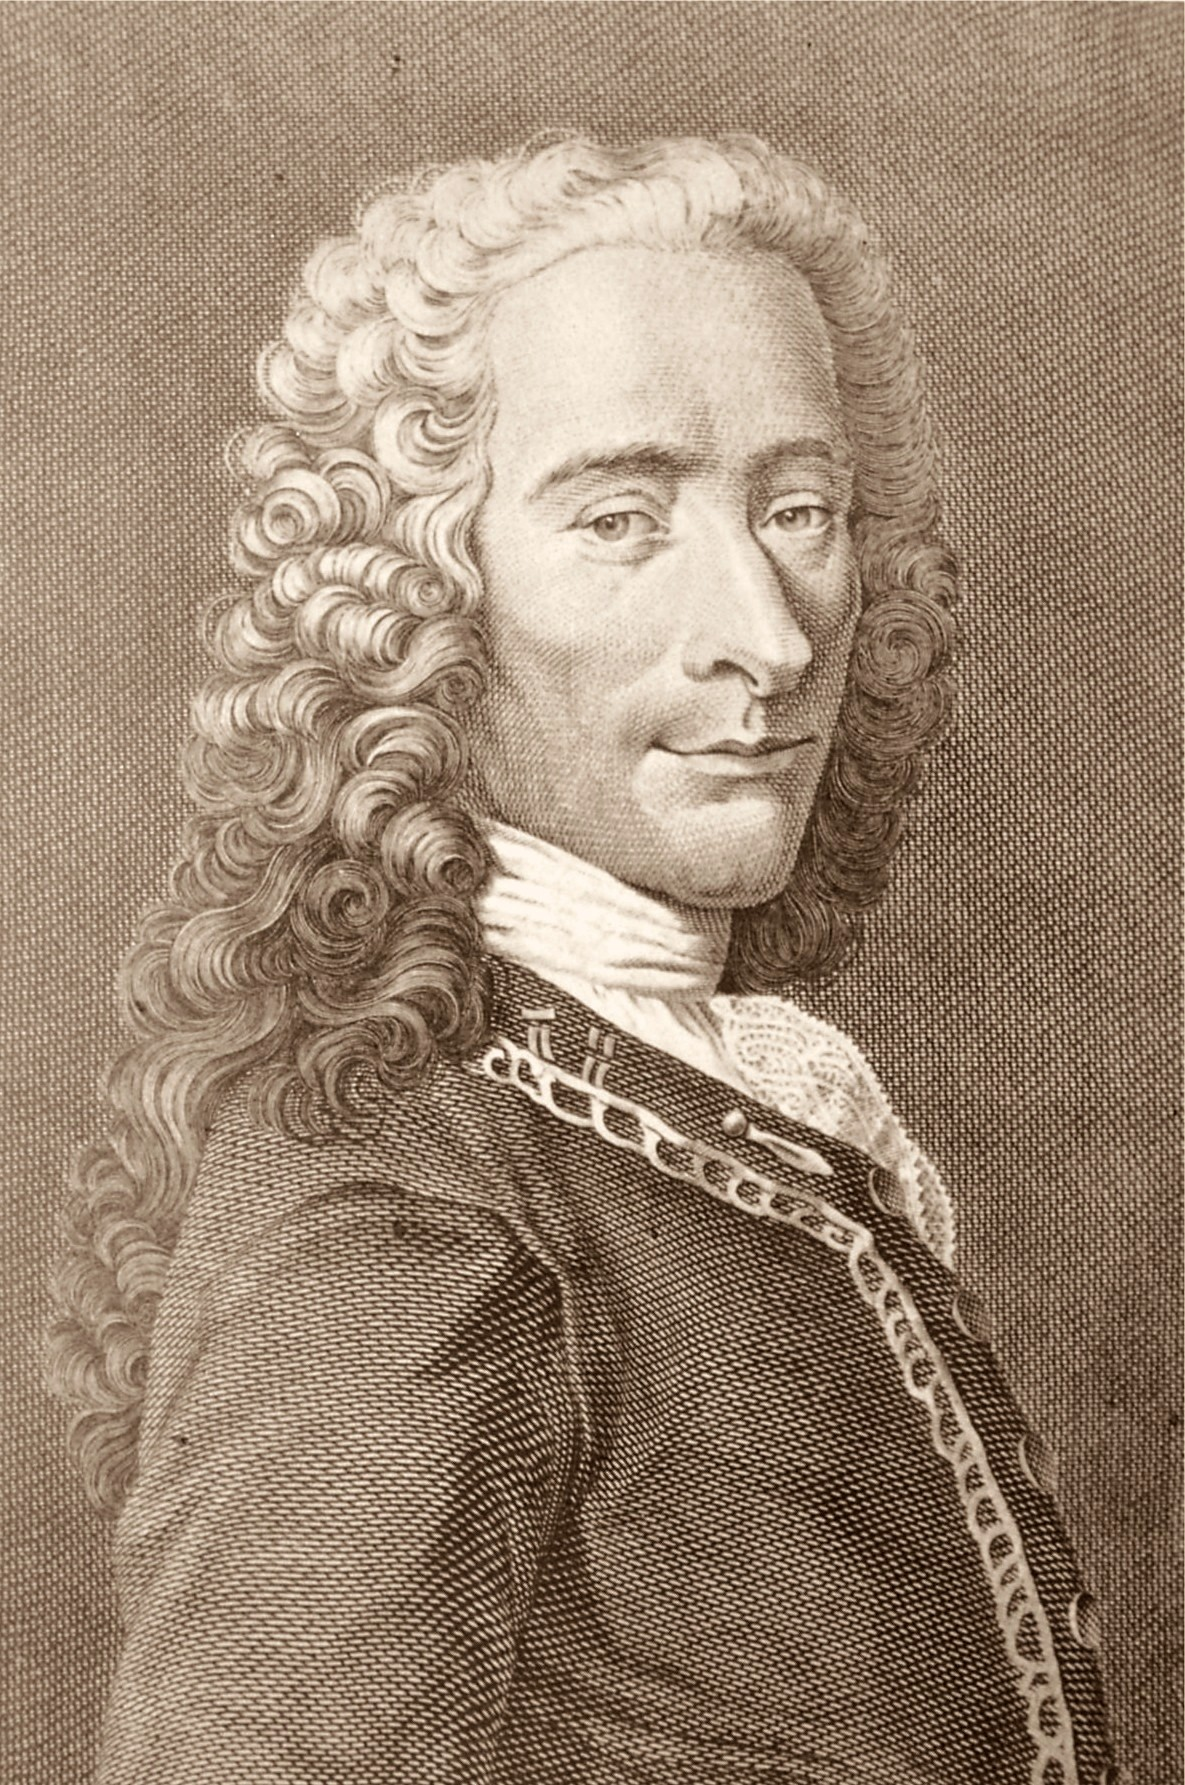 a look into life and career of voltaire Voltaire's career had to this point leaned more toward literature than philosophy, but in england's more laissez-faire market of ideas, voltaire started to engage with convention-challenging concepts about the universe and man's place in it.